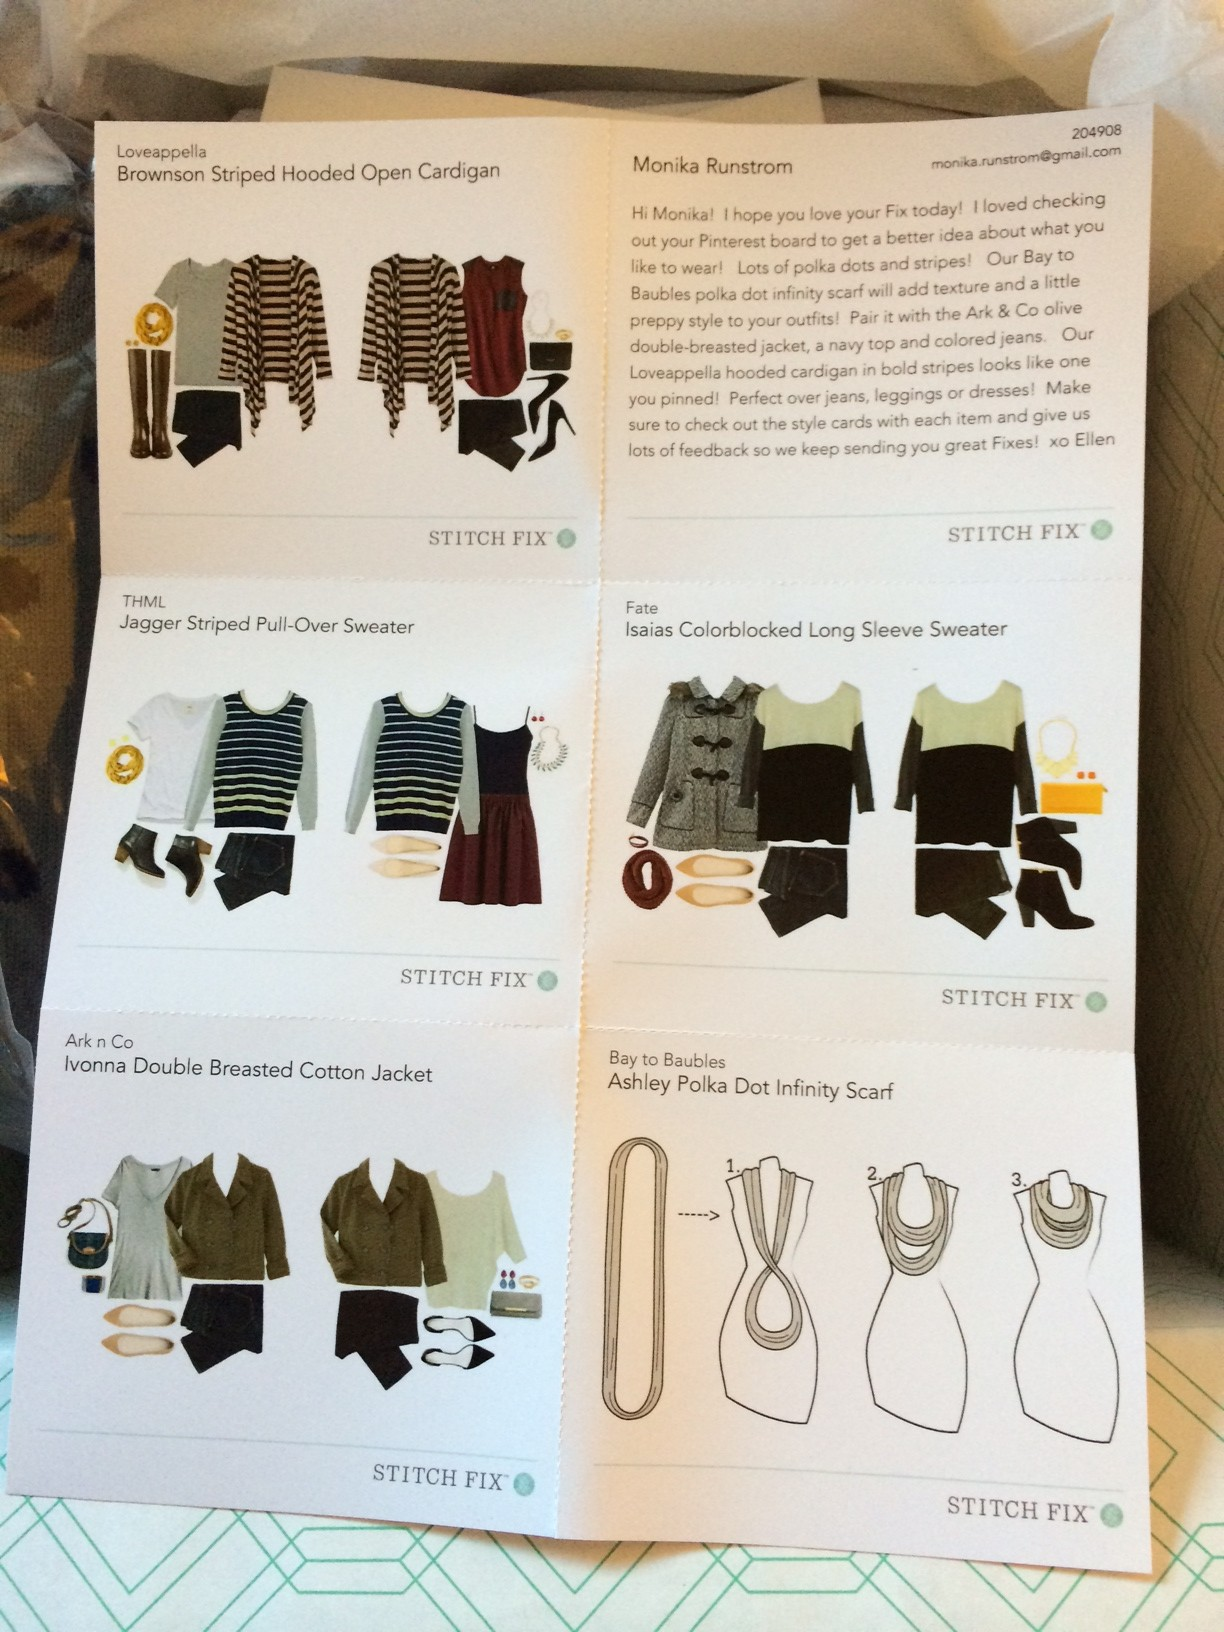 Stitch Fix New Letter Showing Clothes